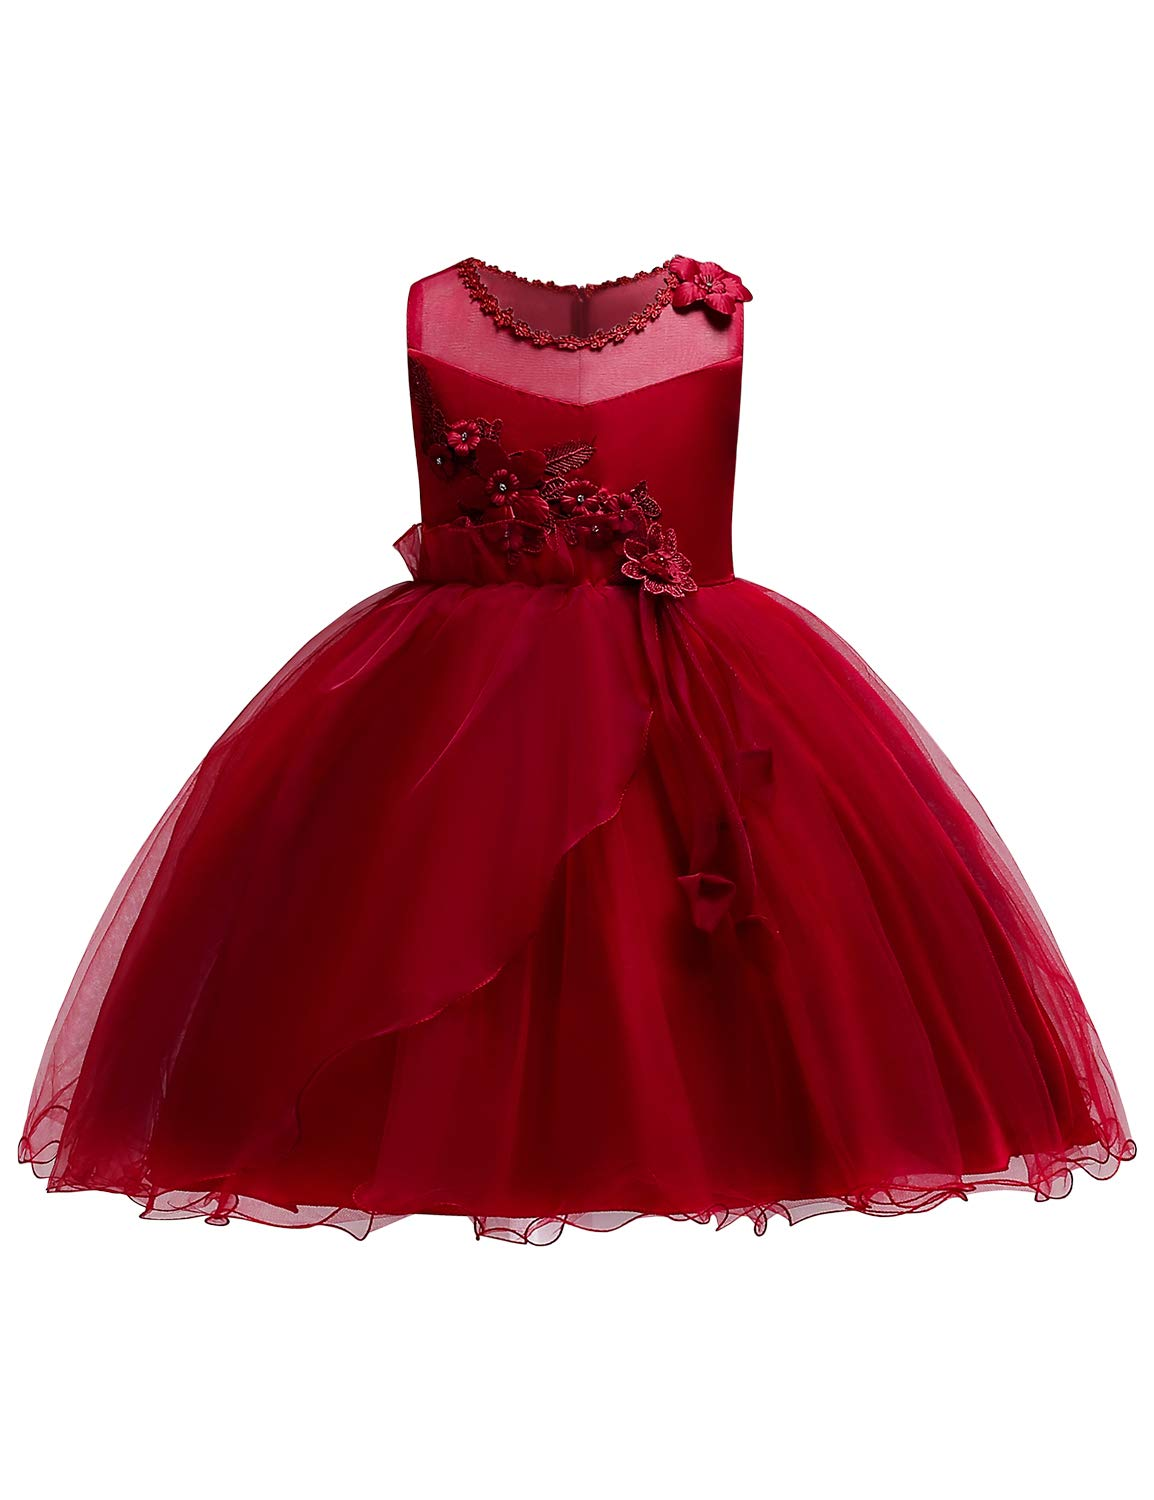 cab7206c7675 JOYMOM Kids Ruffle Dress, Girls Sleeveless 3D Flower Layered Ruffles Tulle  Dresses Wedding Party Formal Gowns Sequins Bodice Clothes Red Size (140) 7-8  ...